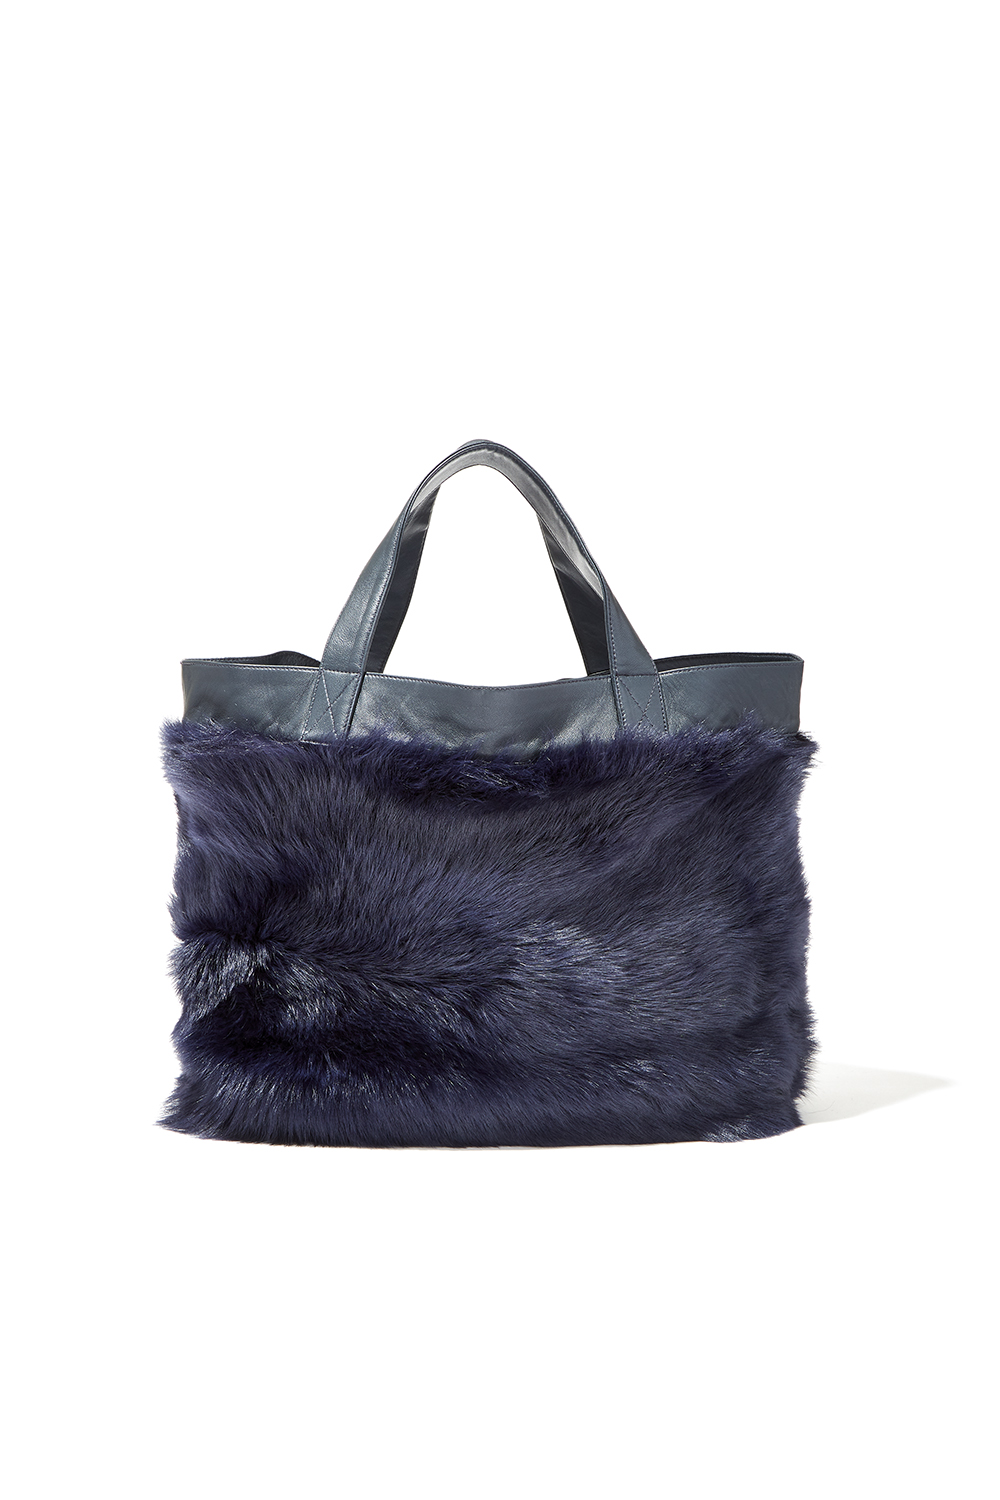 NAVY LILY TOTE